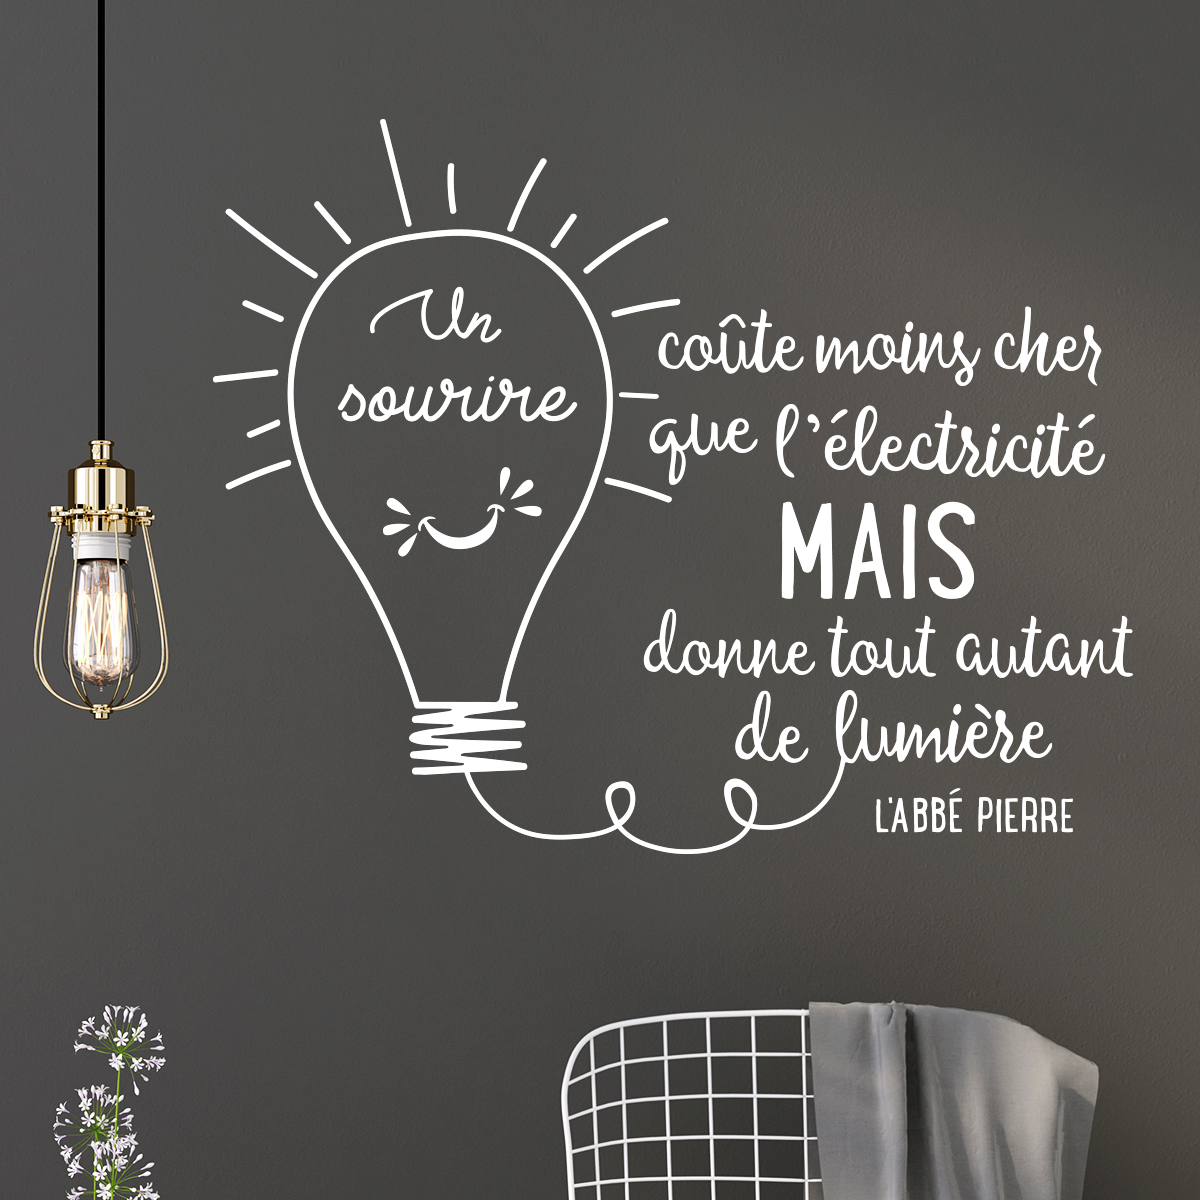 sticker citation un sourire co te moins cher que l 39 lectricit stickers citations fran ais. Black Bedroom Furniture Sets. Home Design Ideas